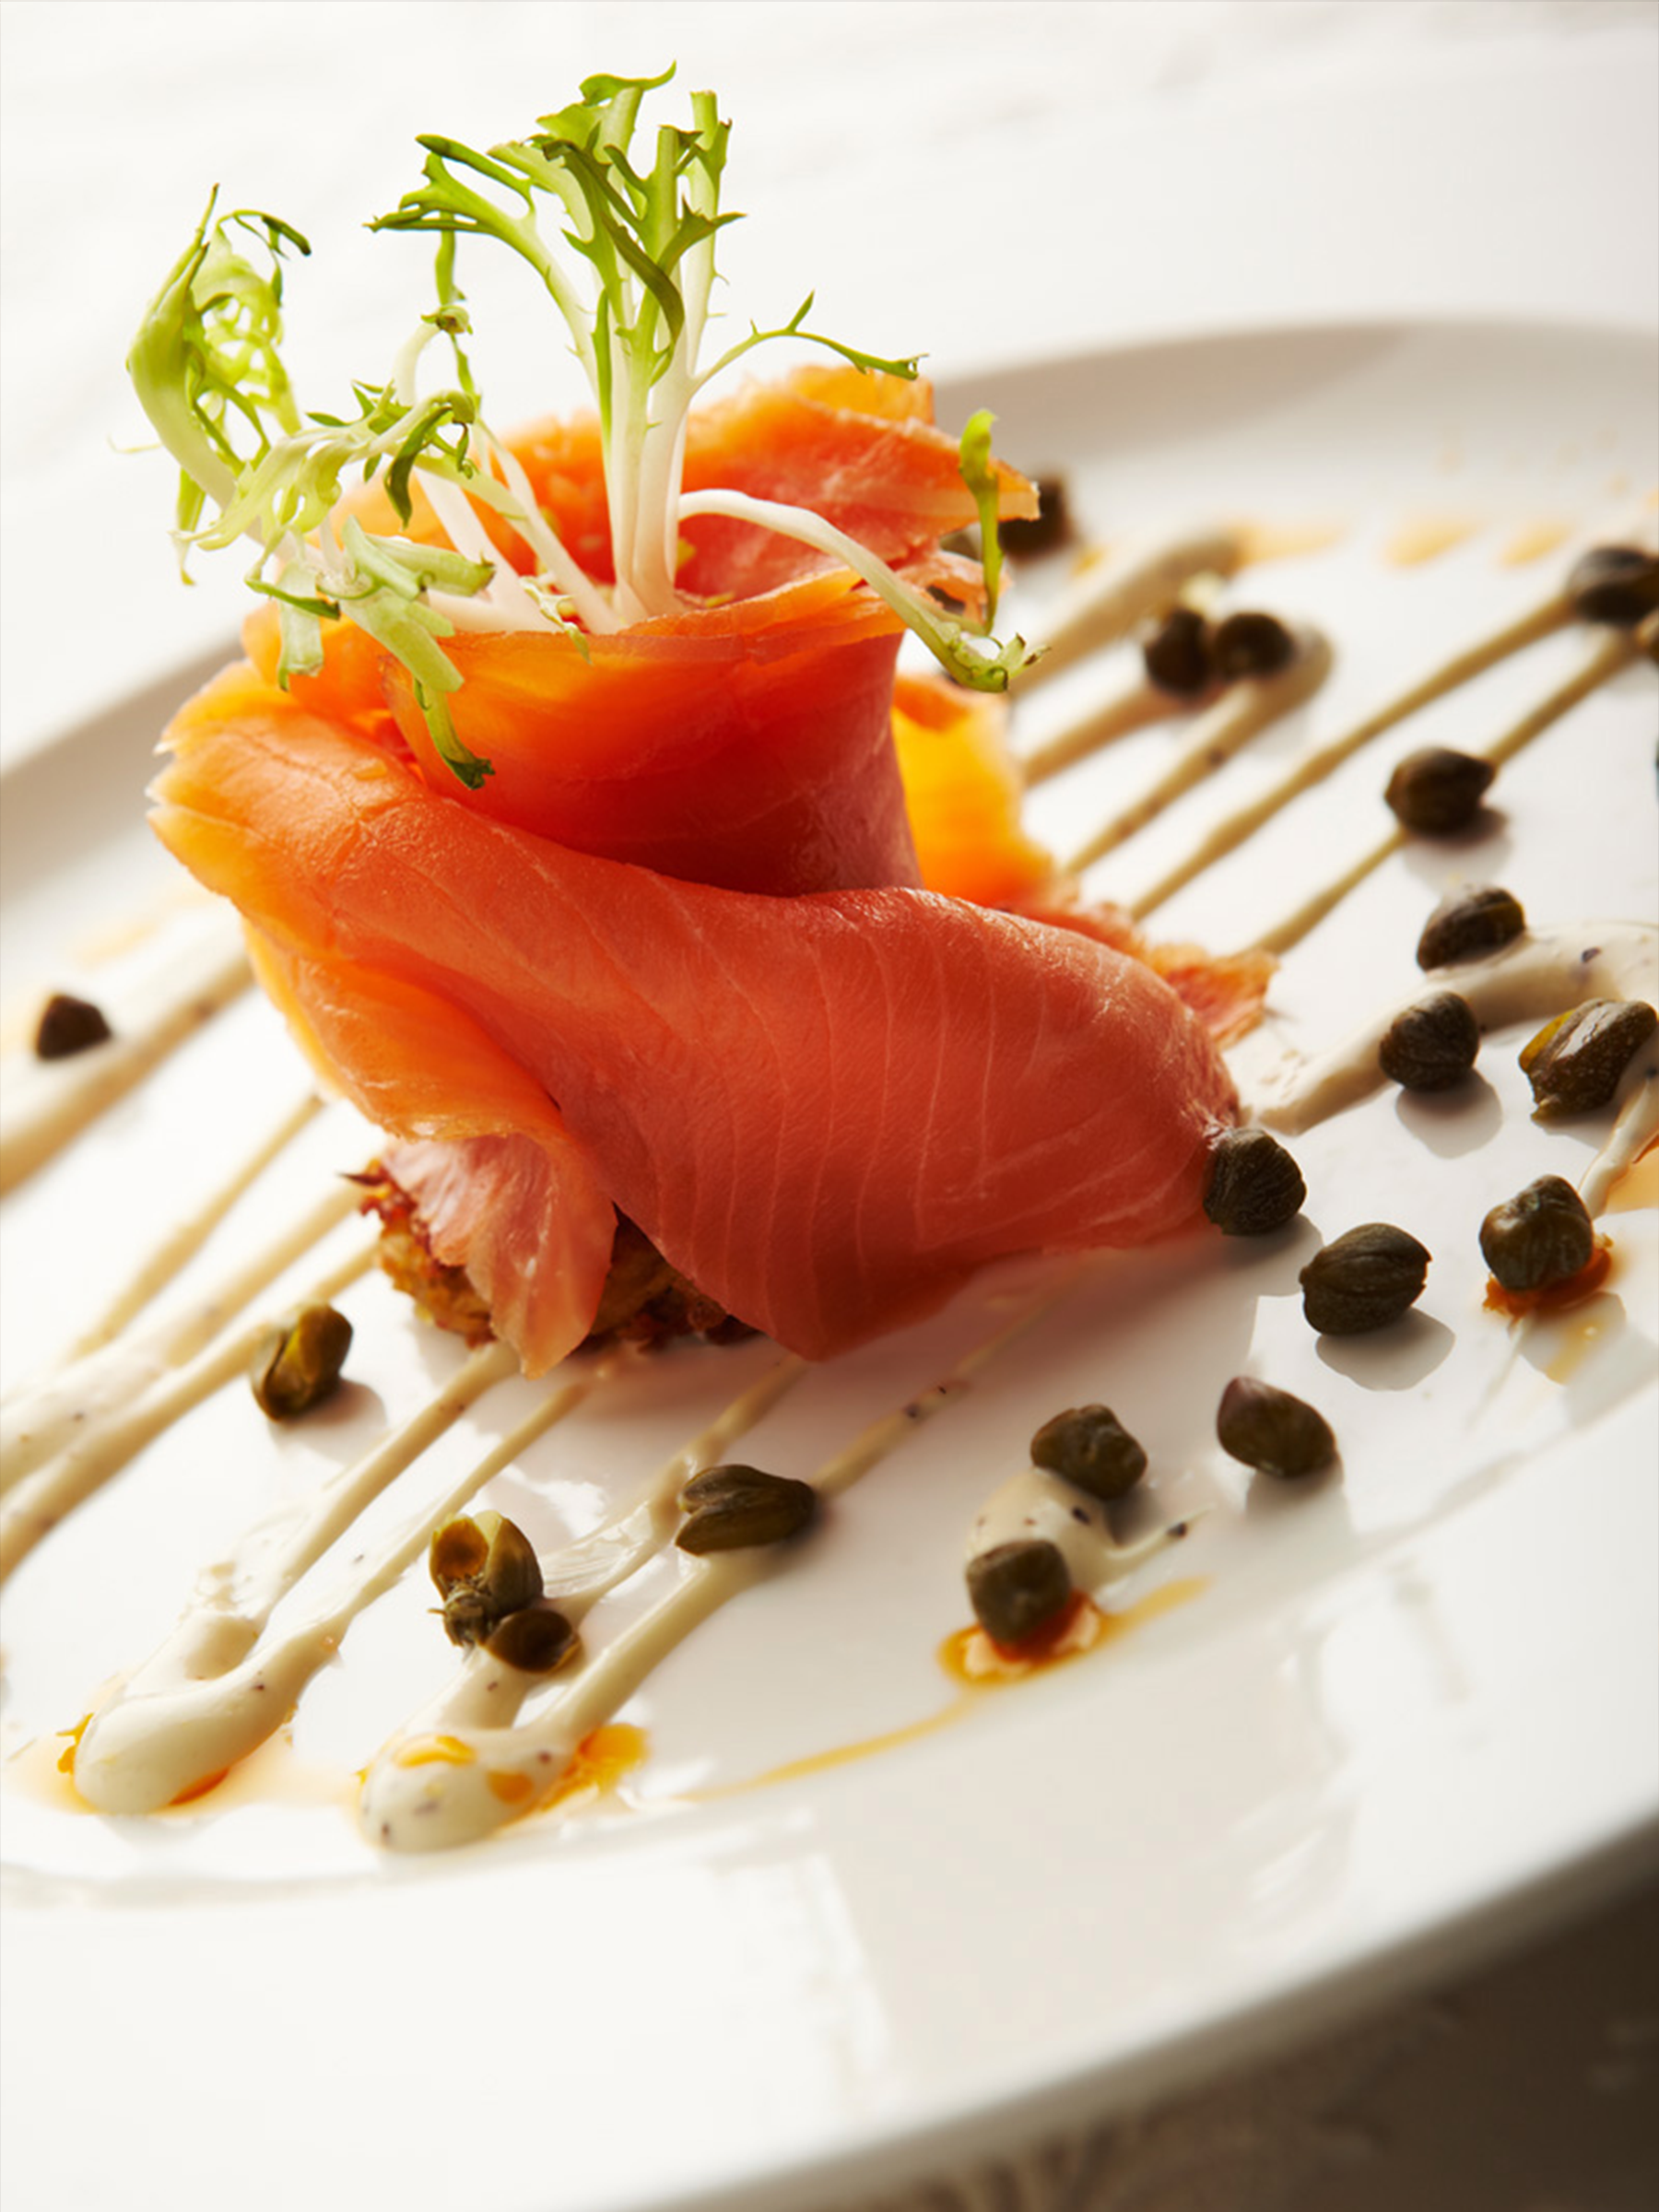 raw salmon topped with garnish and capers